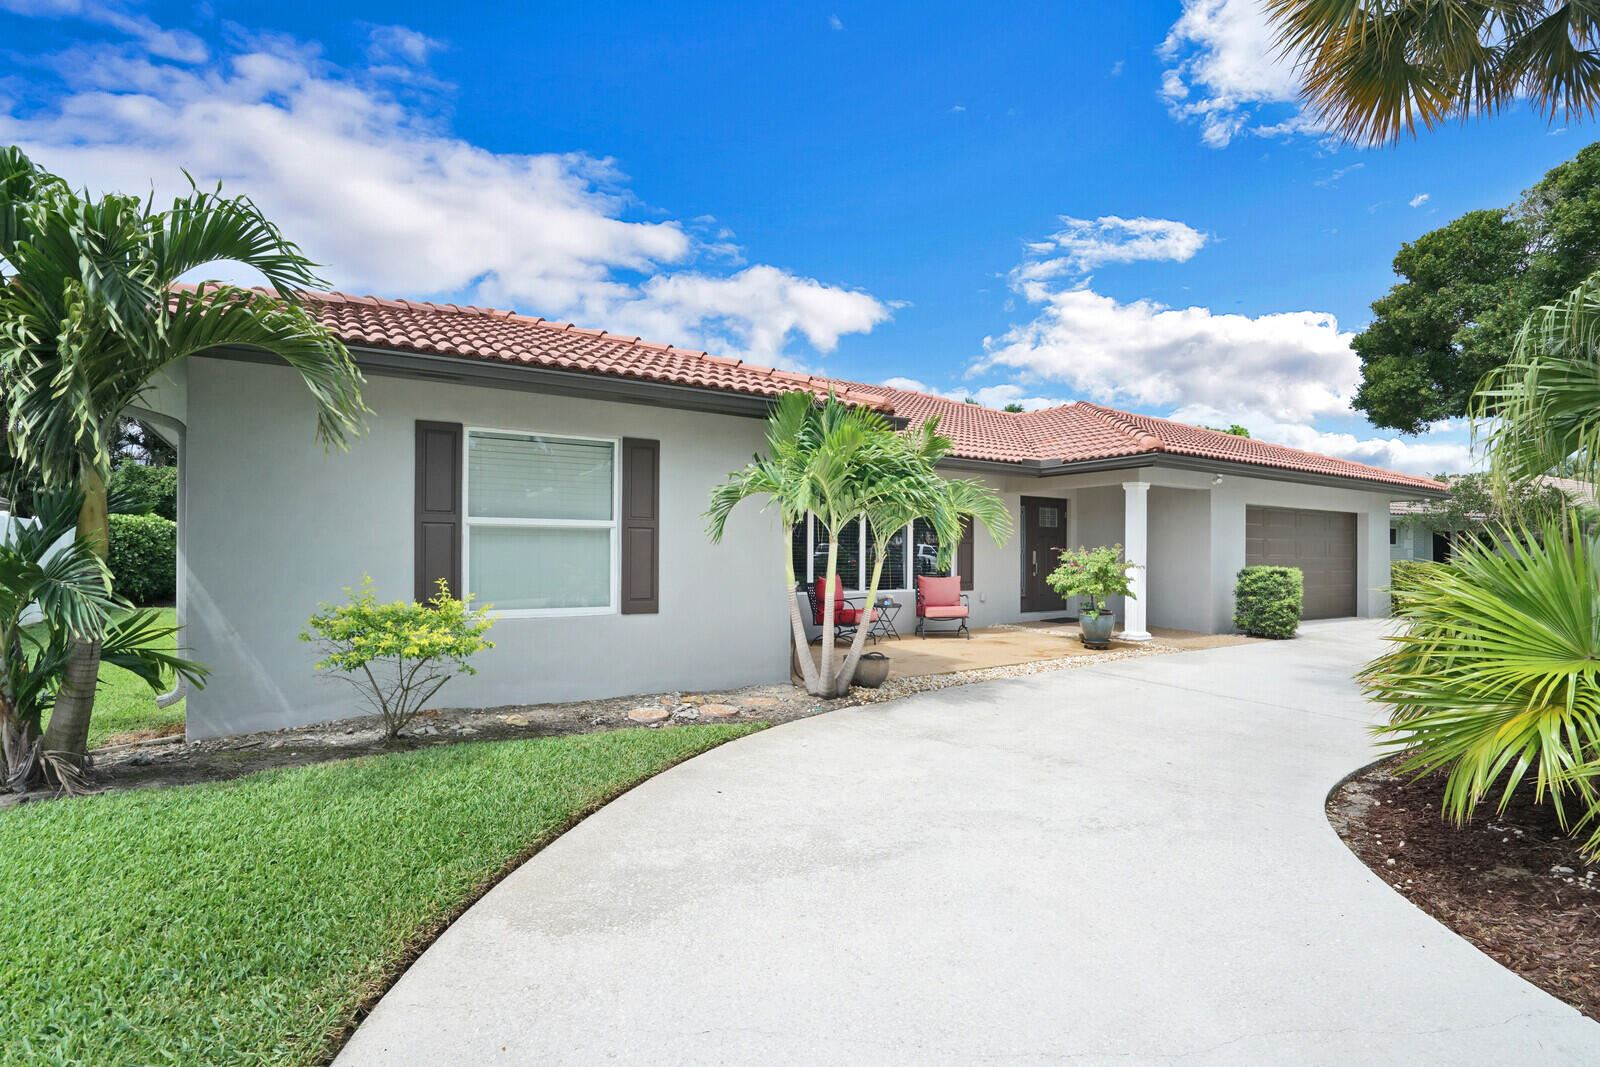 Photo of 650 SW 16th Street, Boca Raton, FL 33486 (MLS # RX-10716572)